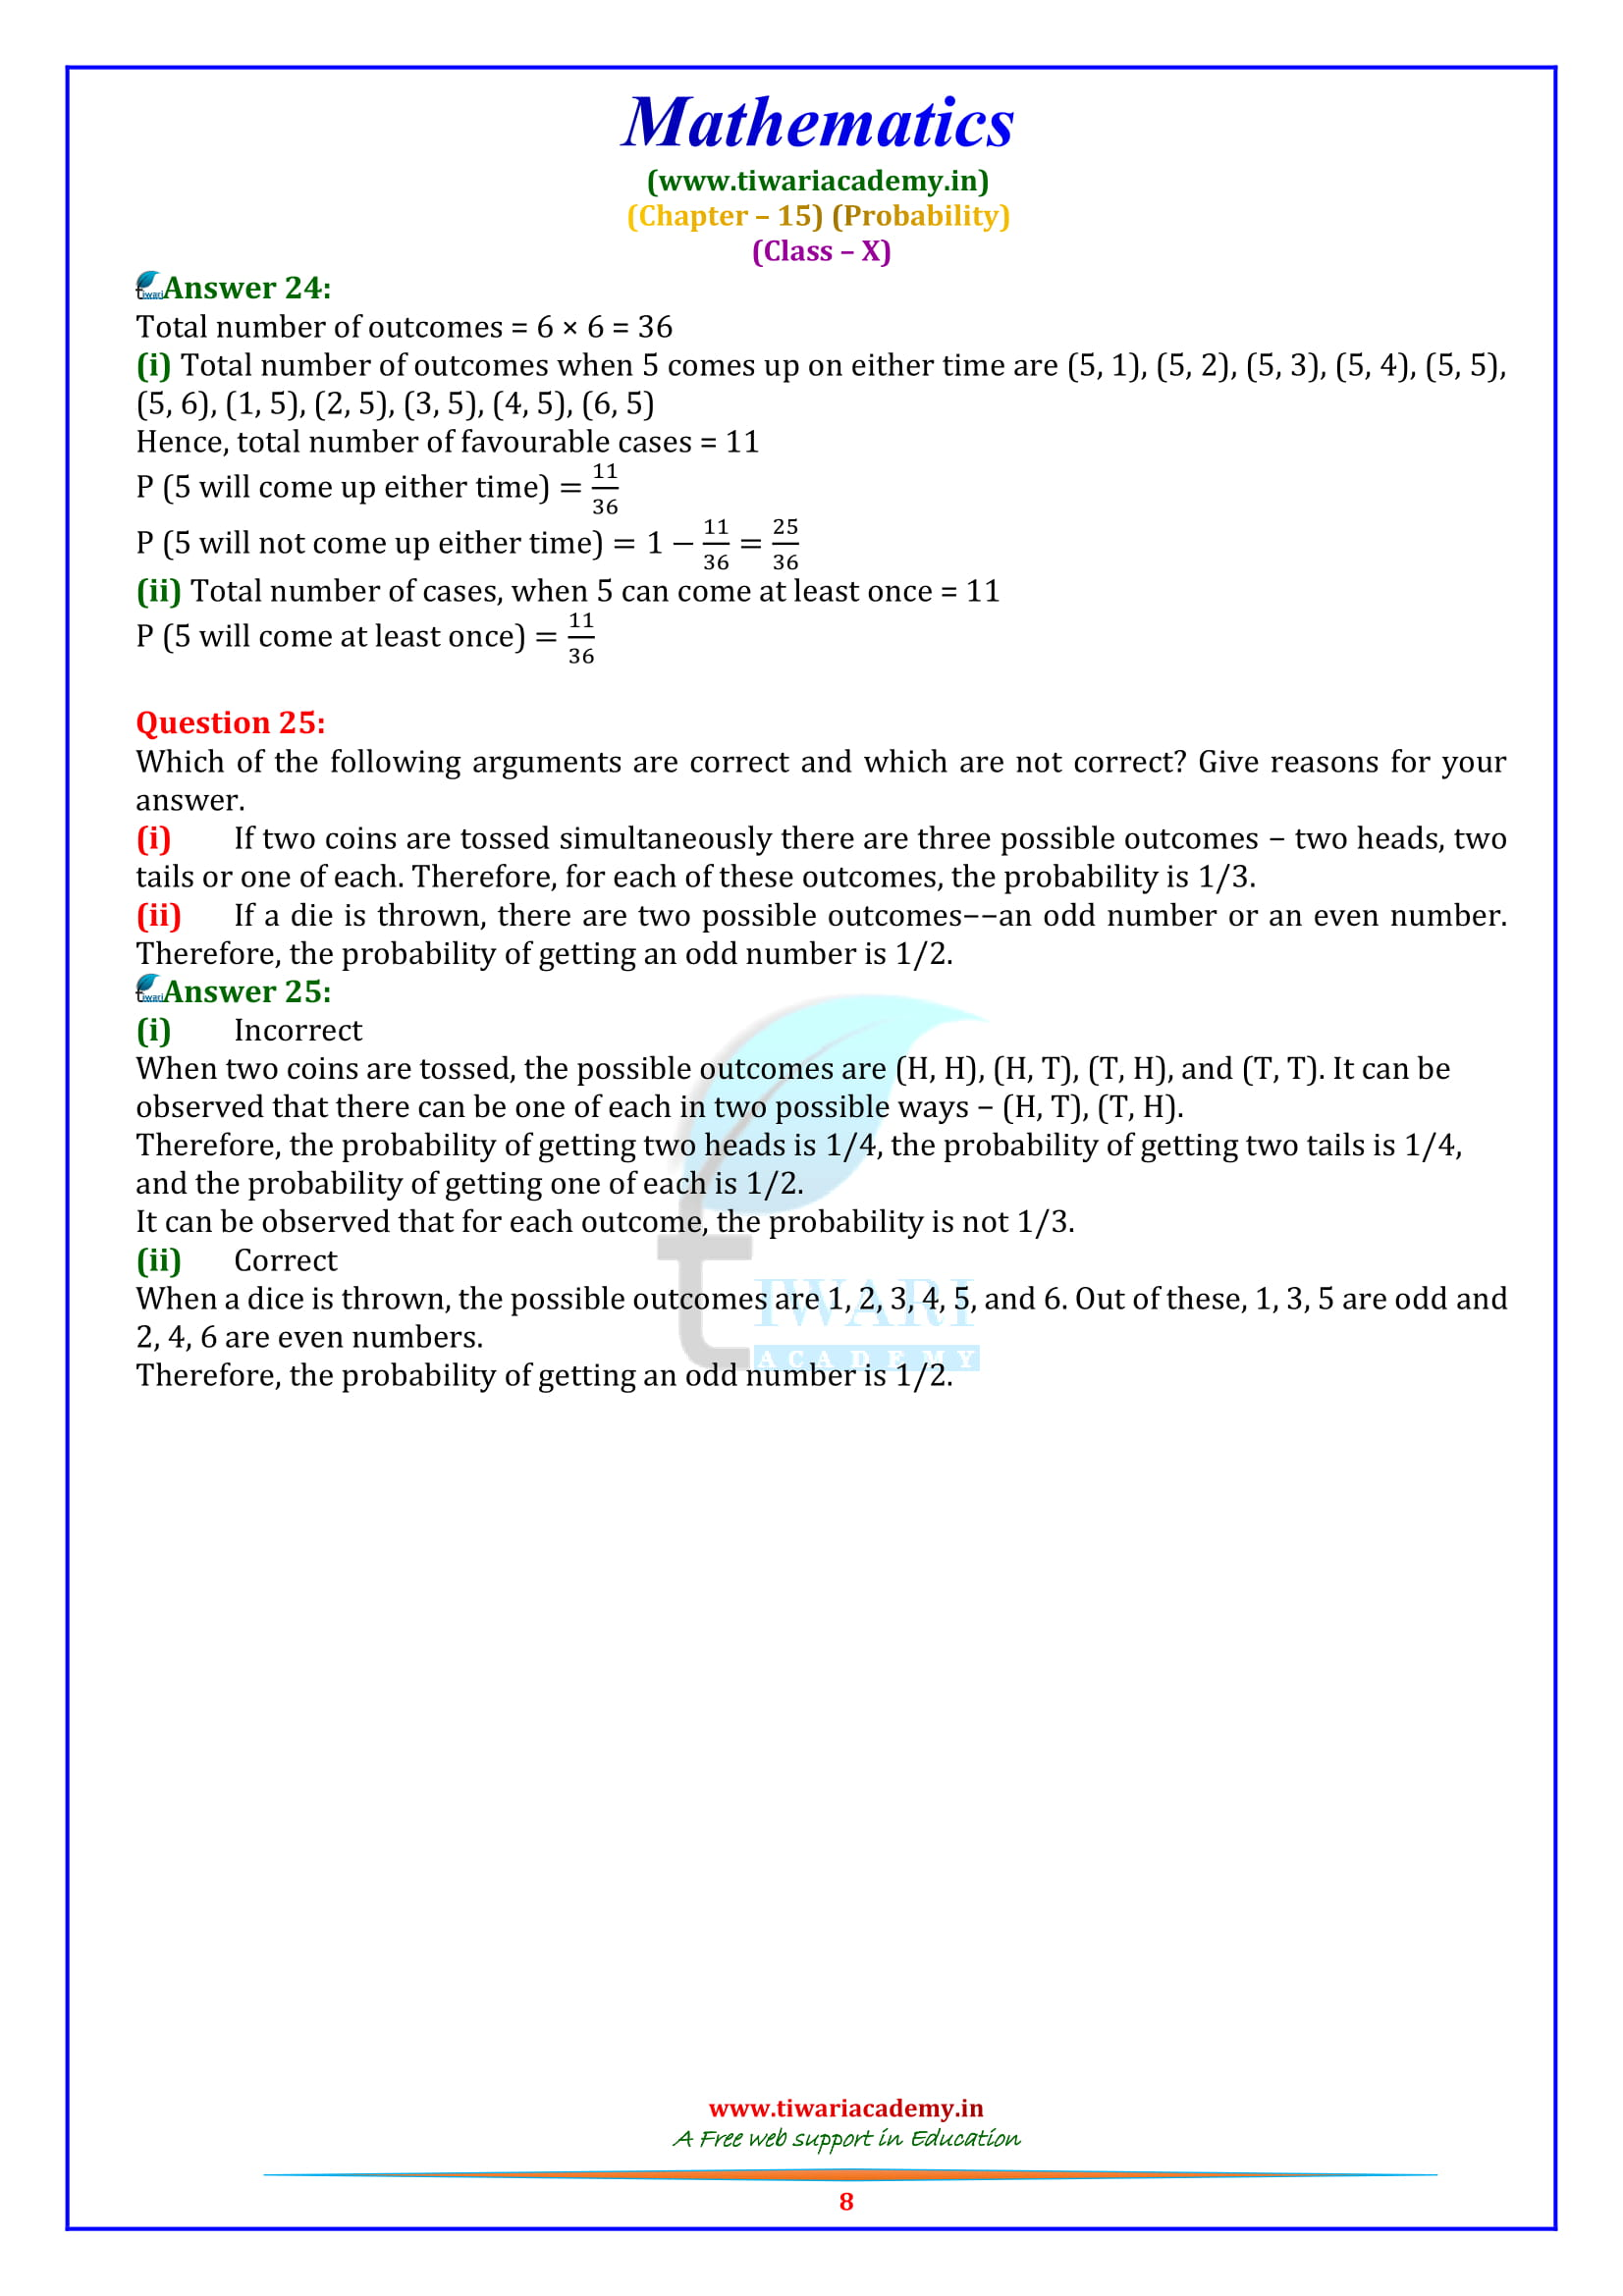 NCERT Solutions for Class 10 Maths Exercise 15.1 free to download